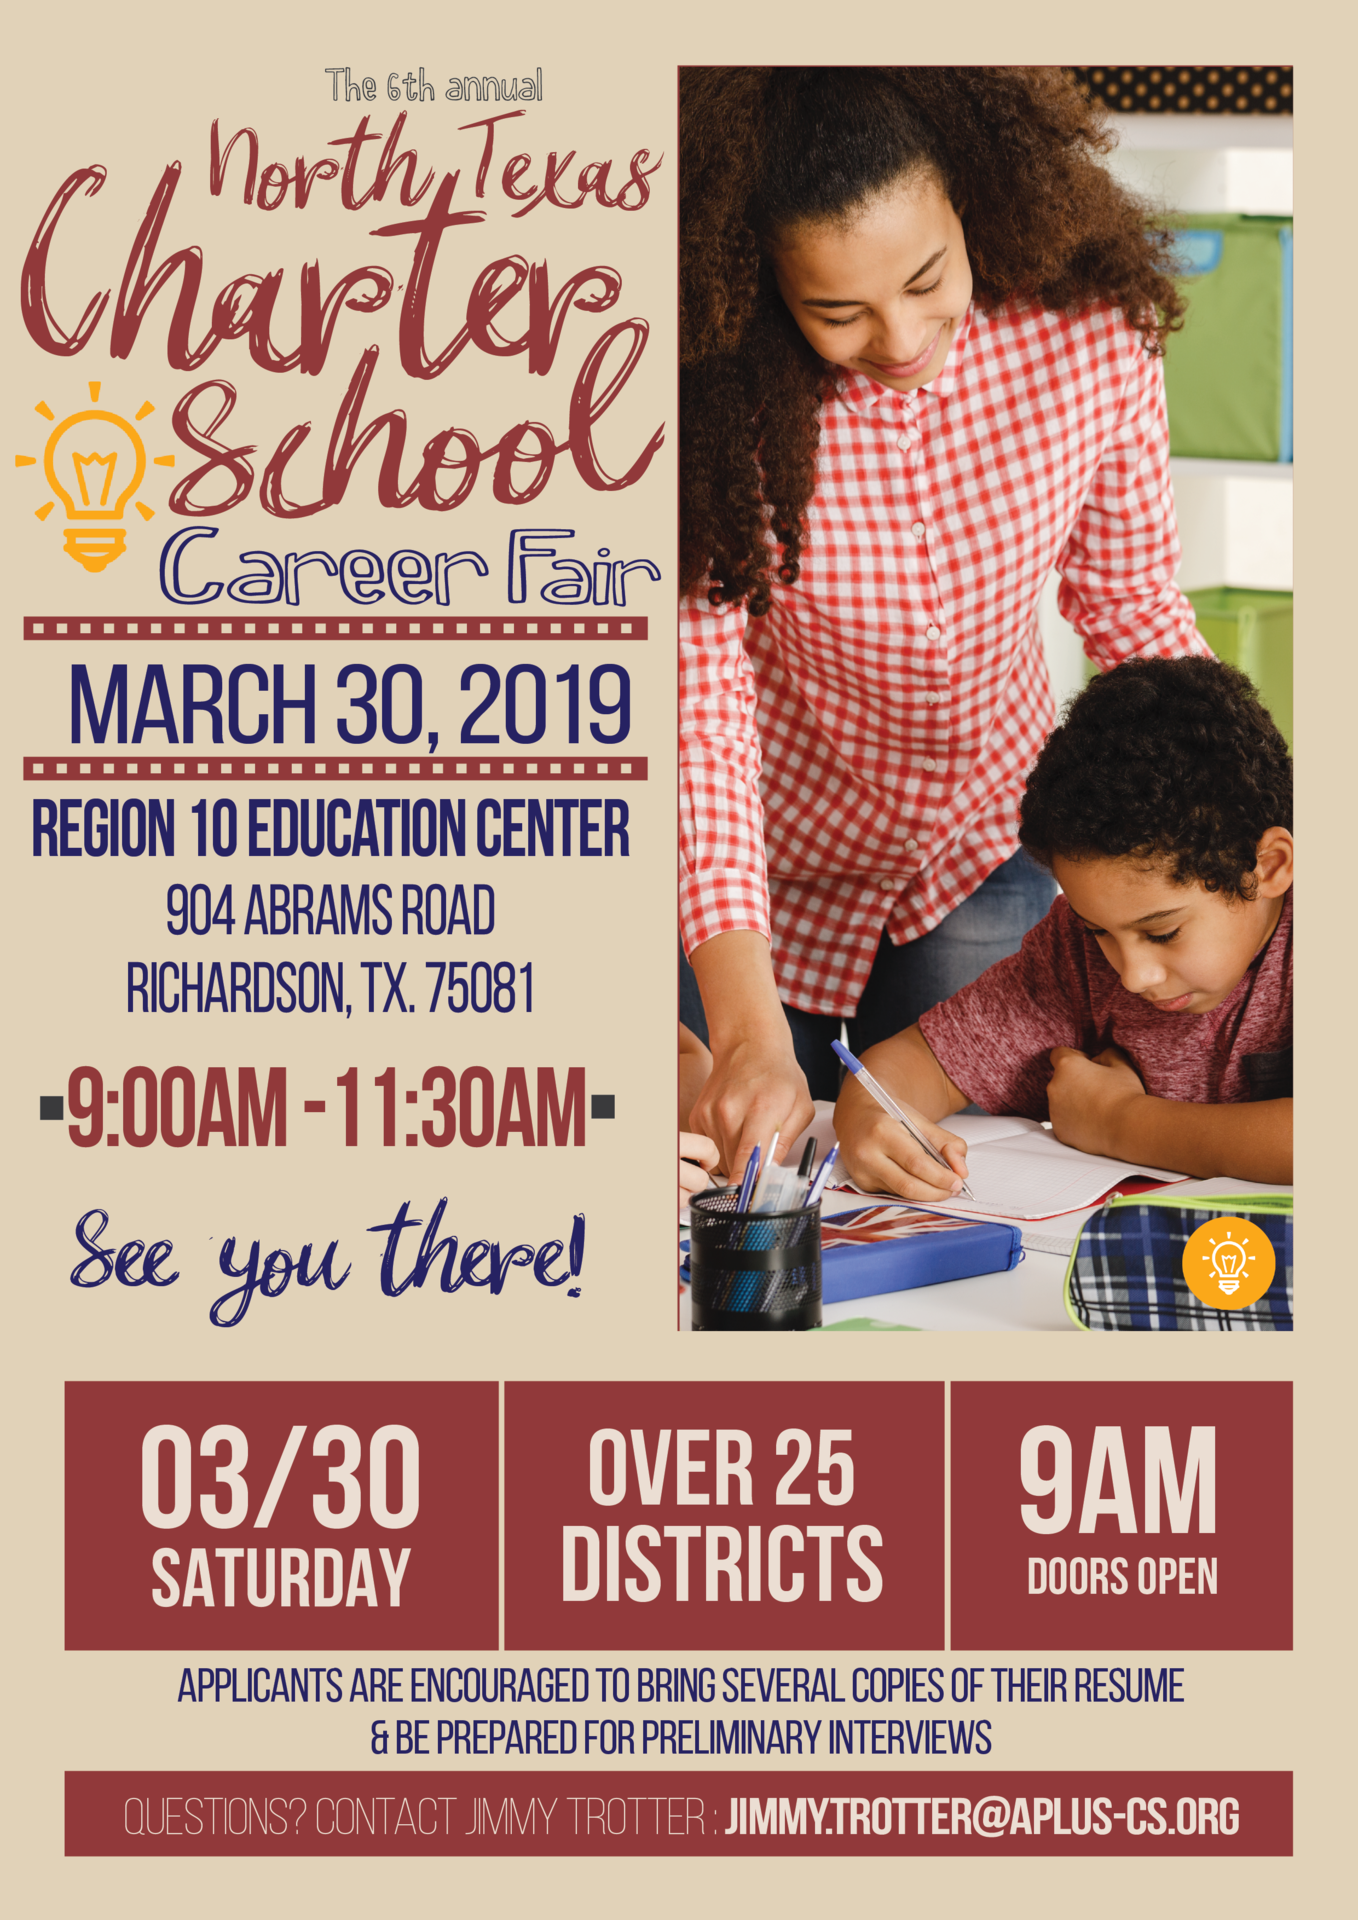 North Texas Charter School Career Fair happening on March 30, 2019; this is the official flyer, which states all the information listed above